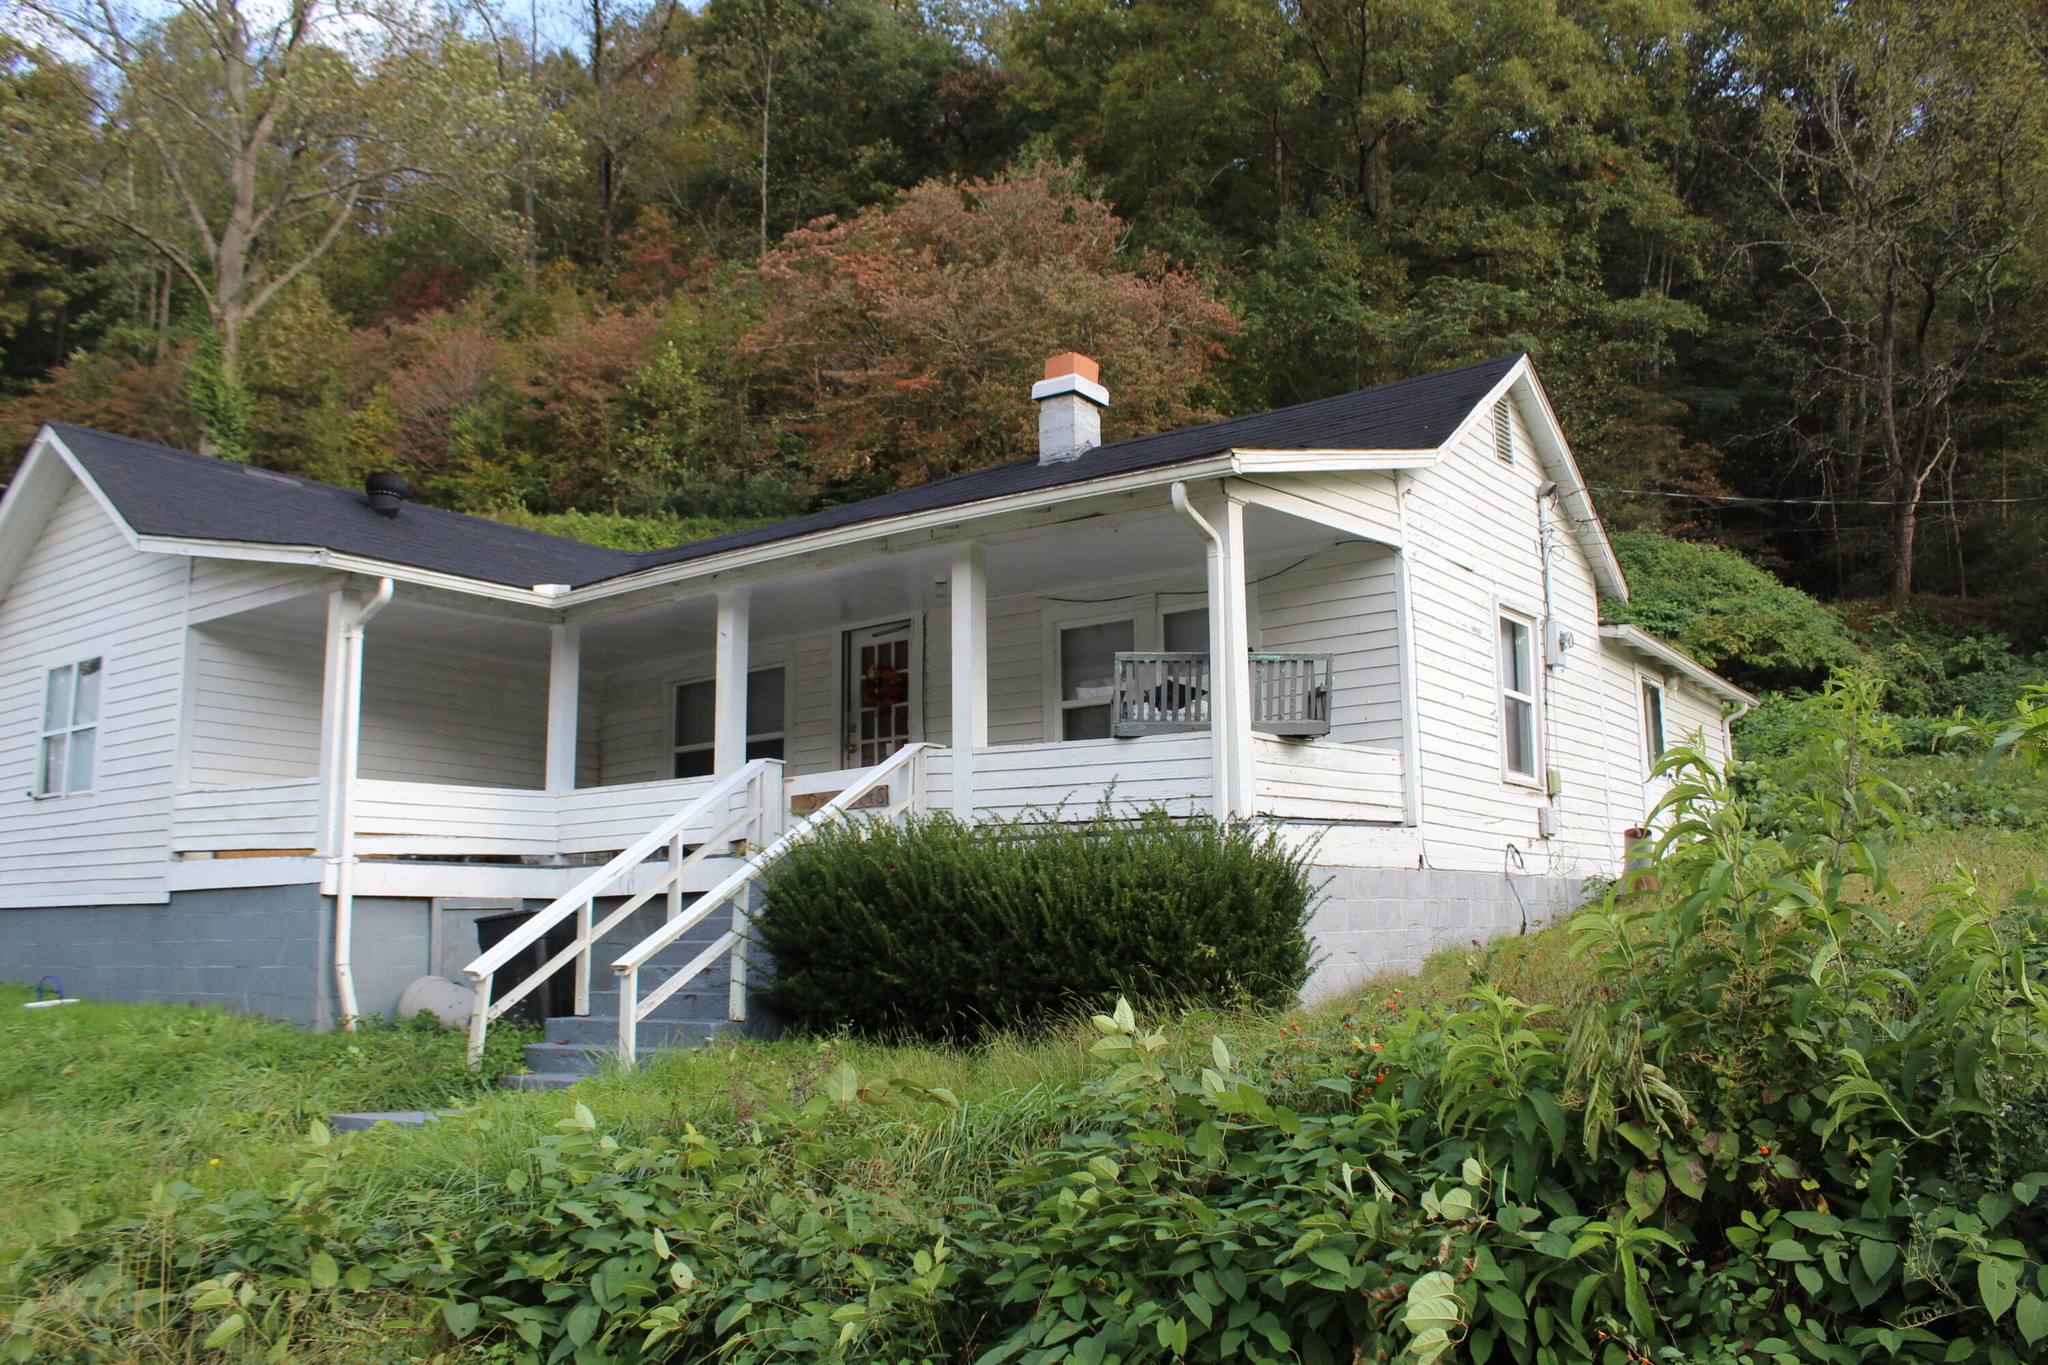 3-Bedroom House In Pineville